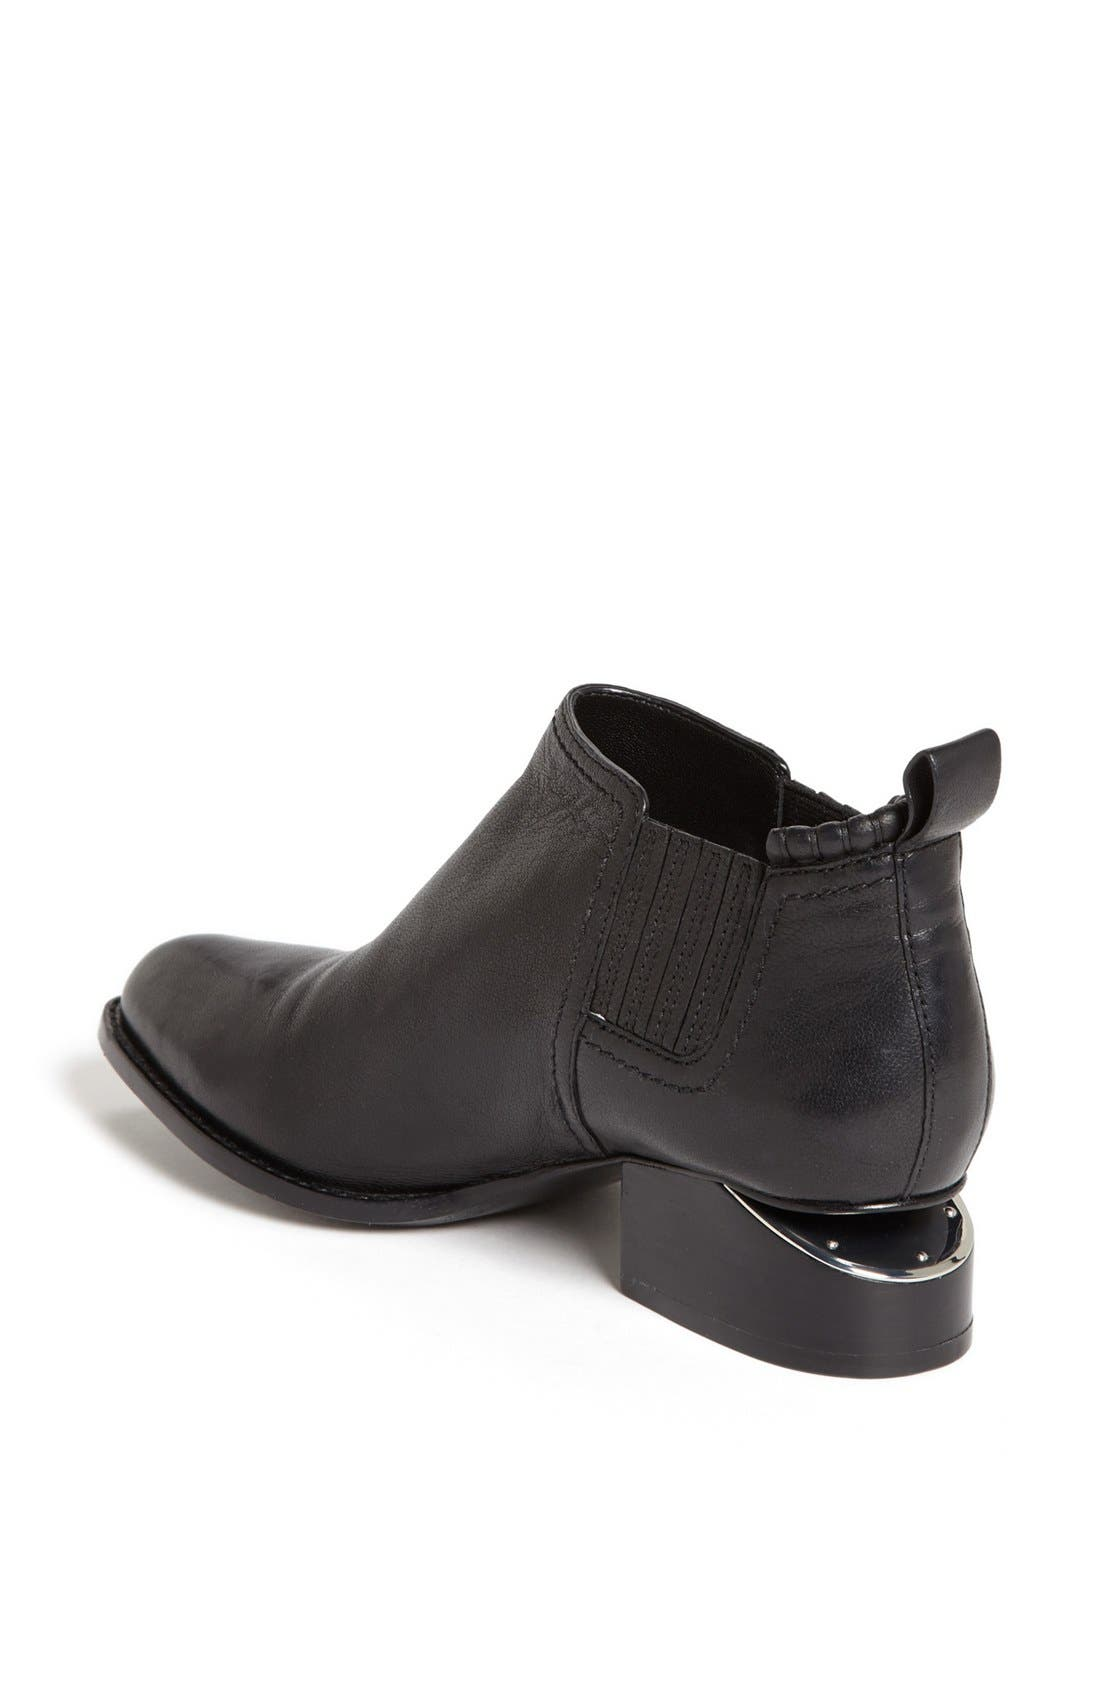 Alternate Image 2  - Alexander Wang 'Kori' Ankle Boot